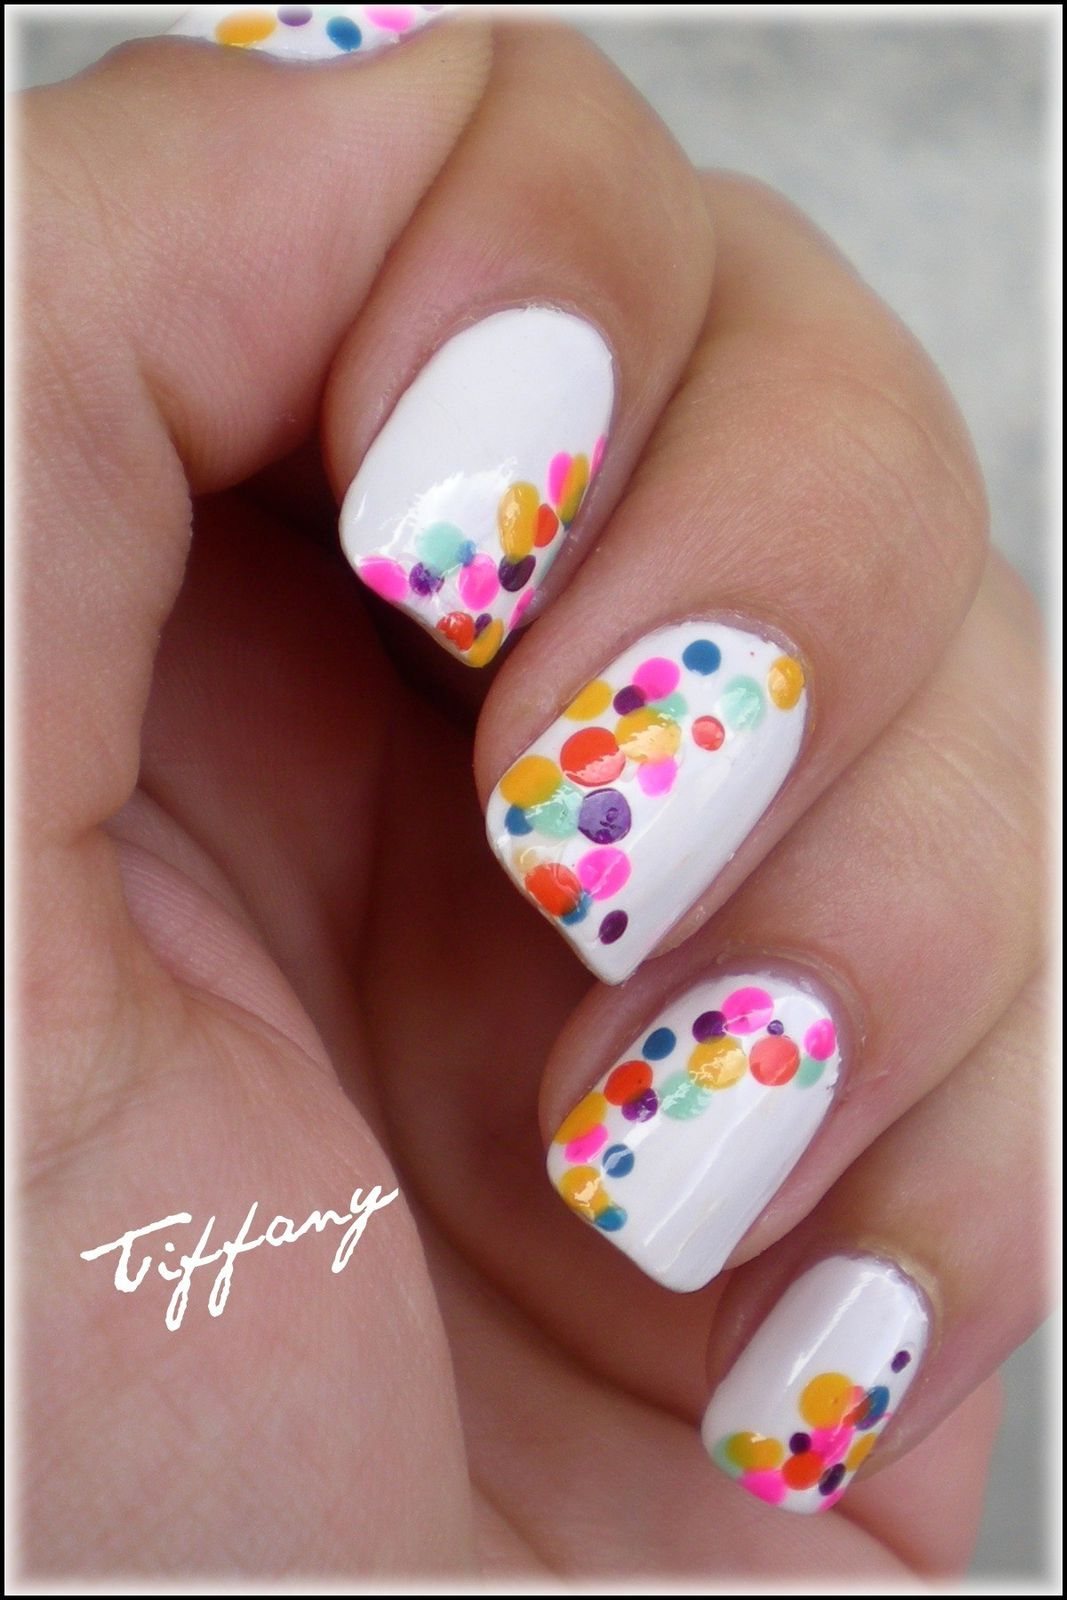 ongles 28.08.11